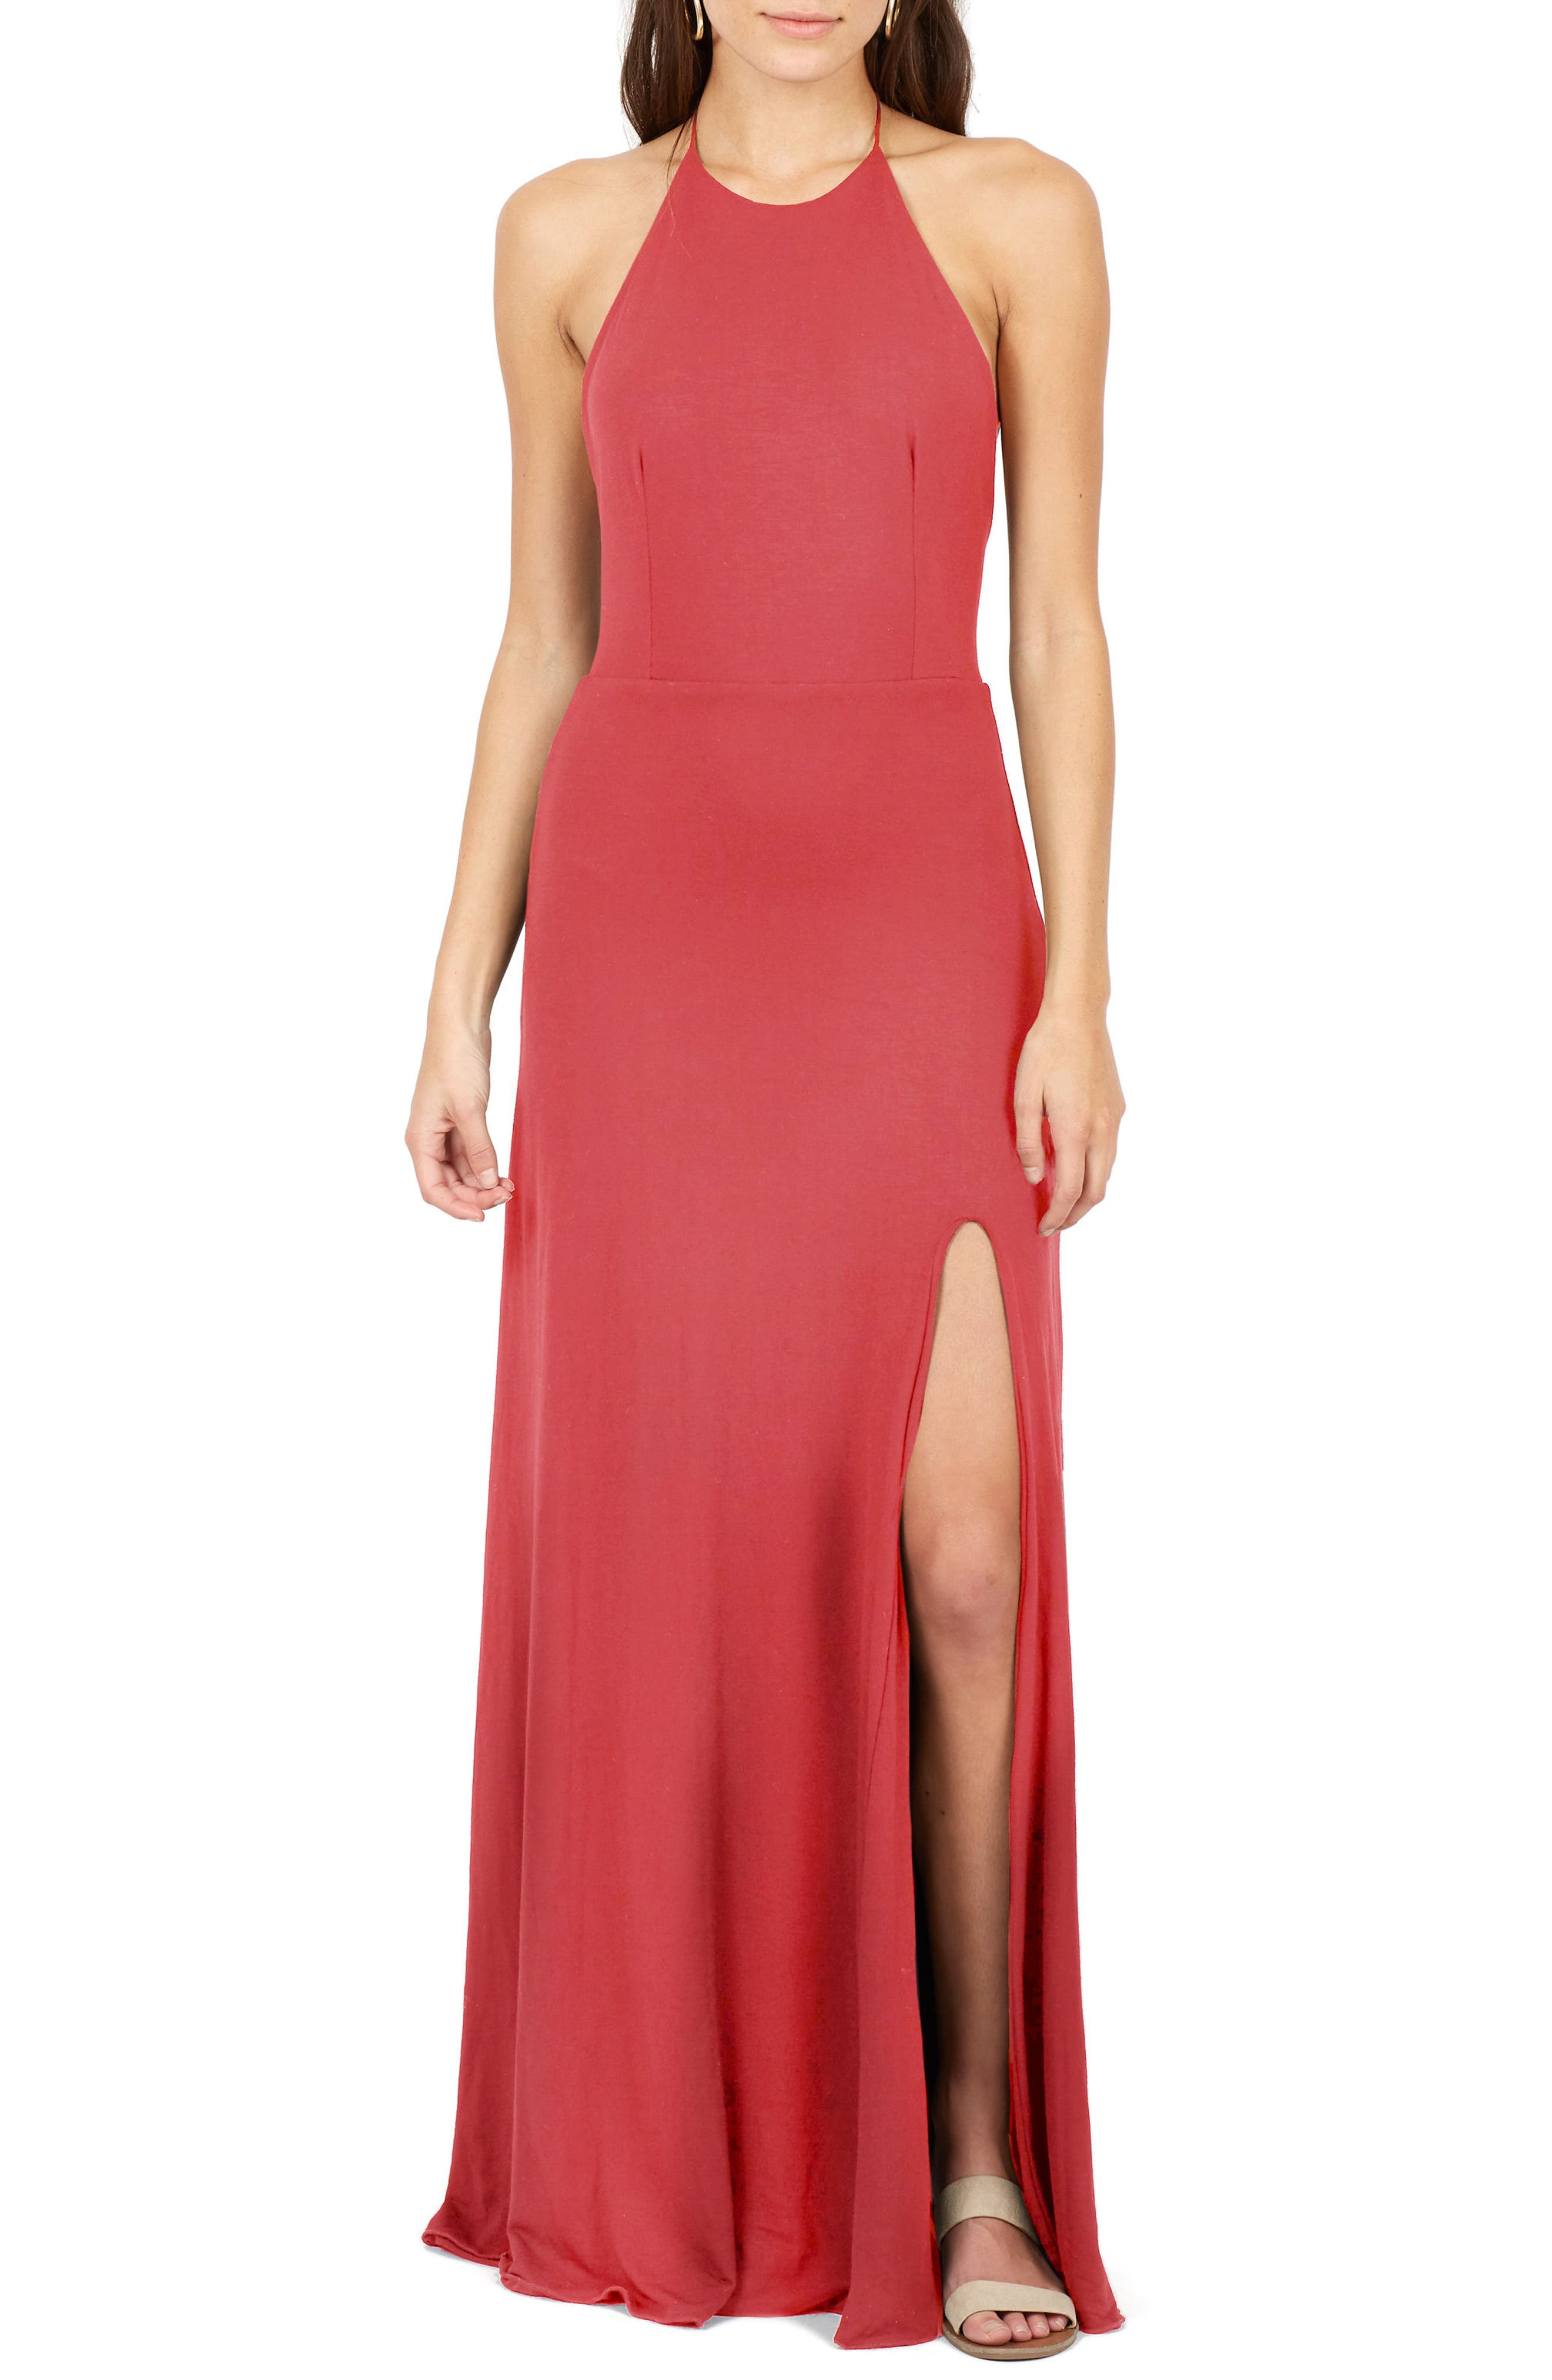 Delacy Nikki Halter Maxi Dress